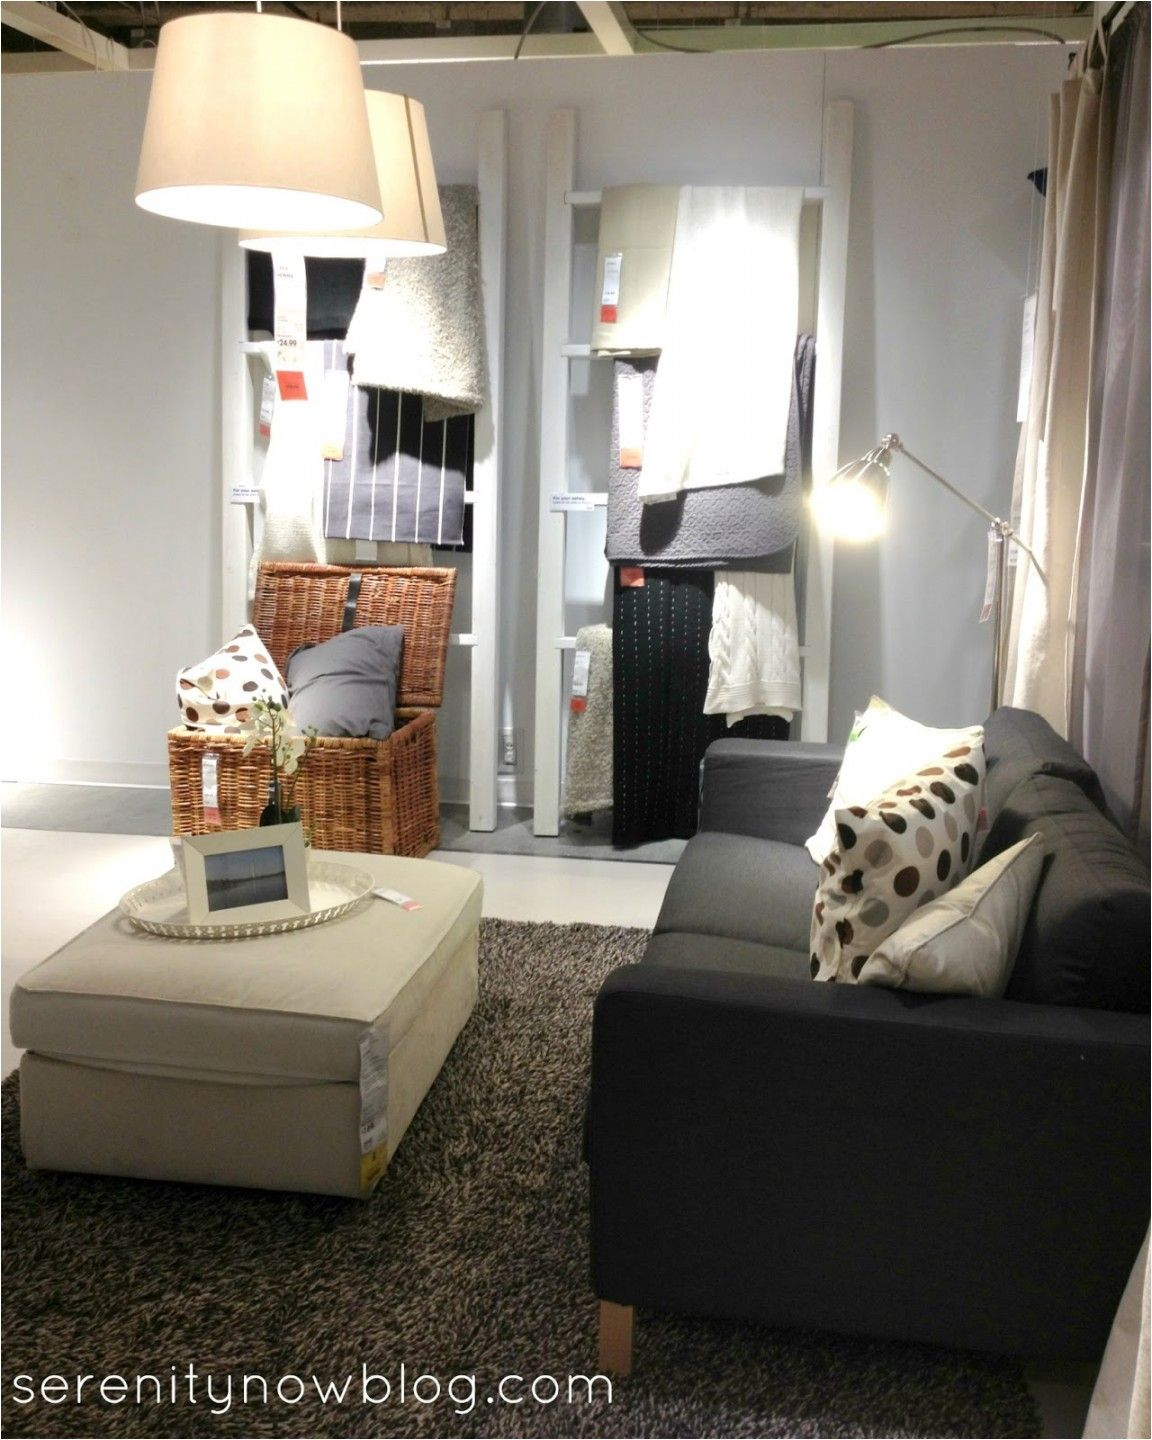 Ikea Small Living Room Design Ideas: Awesome Ikea Home Living Room Planner